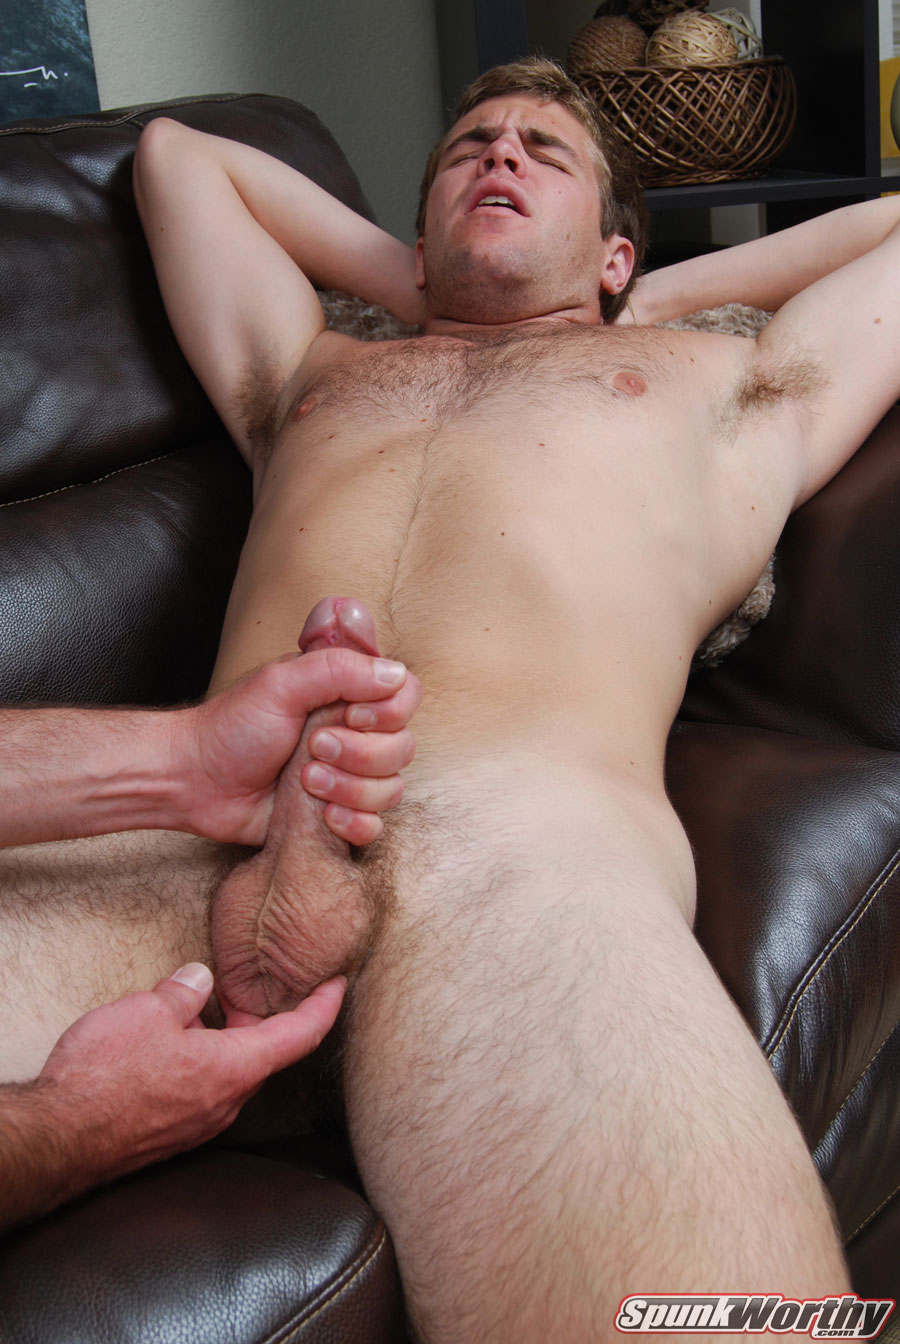 Straight Guy Gets His Dick Sucked